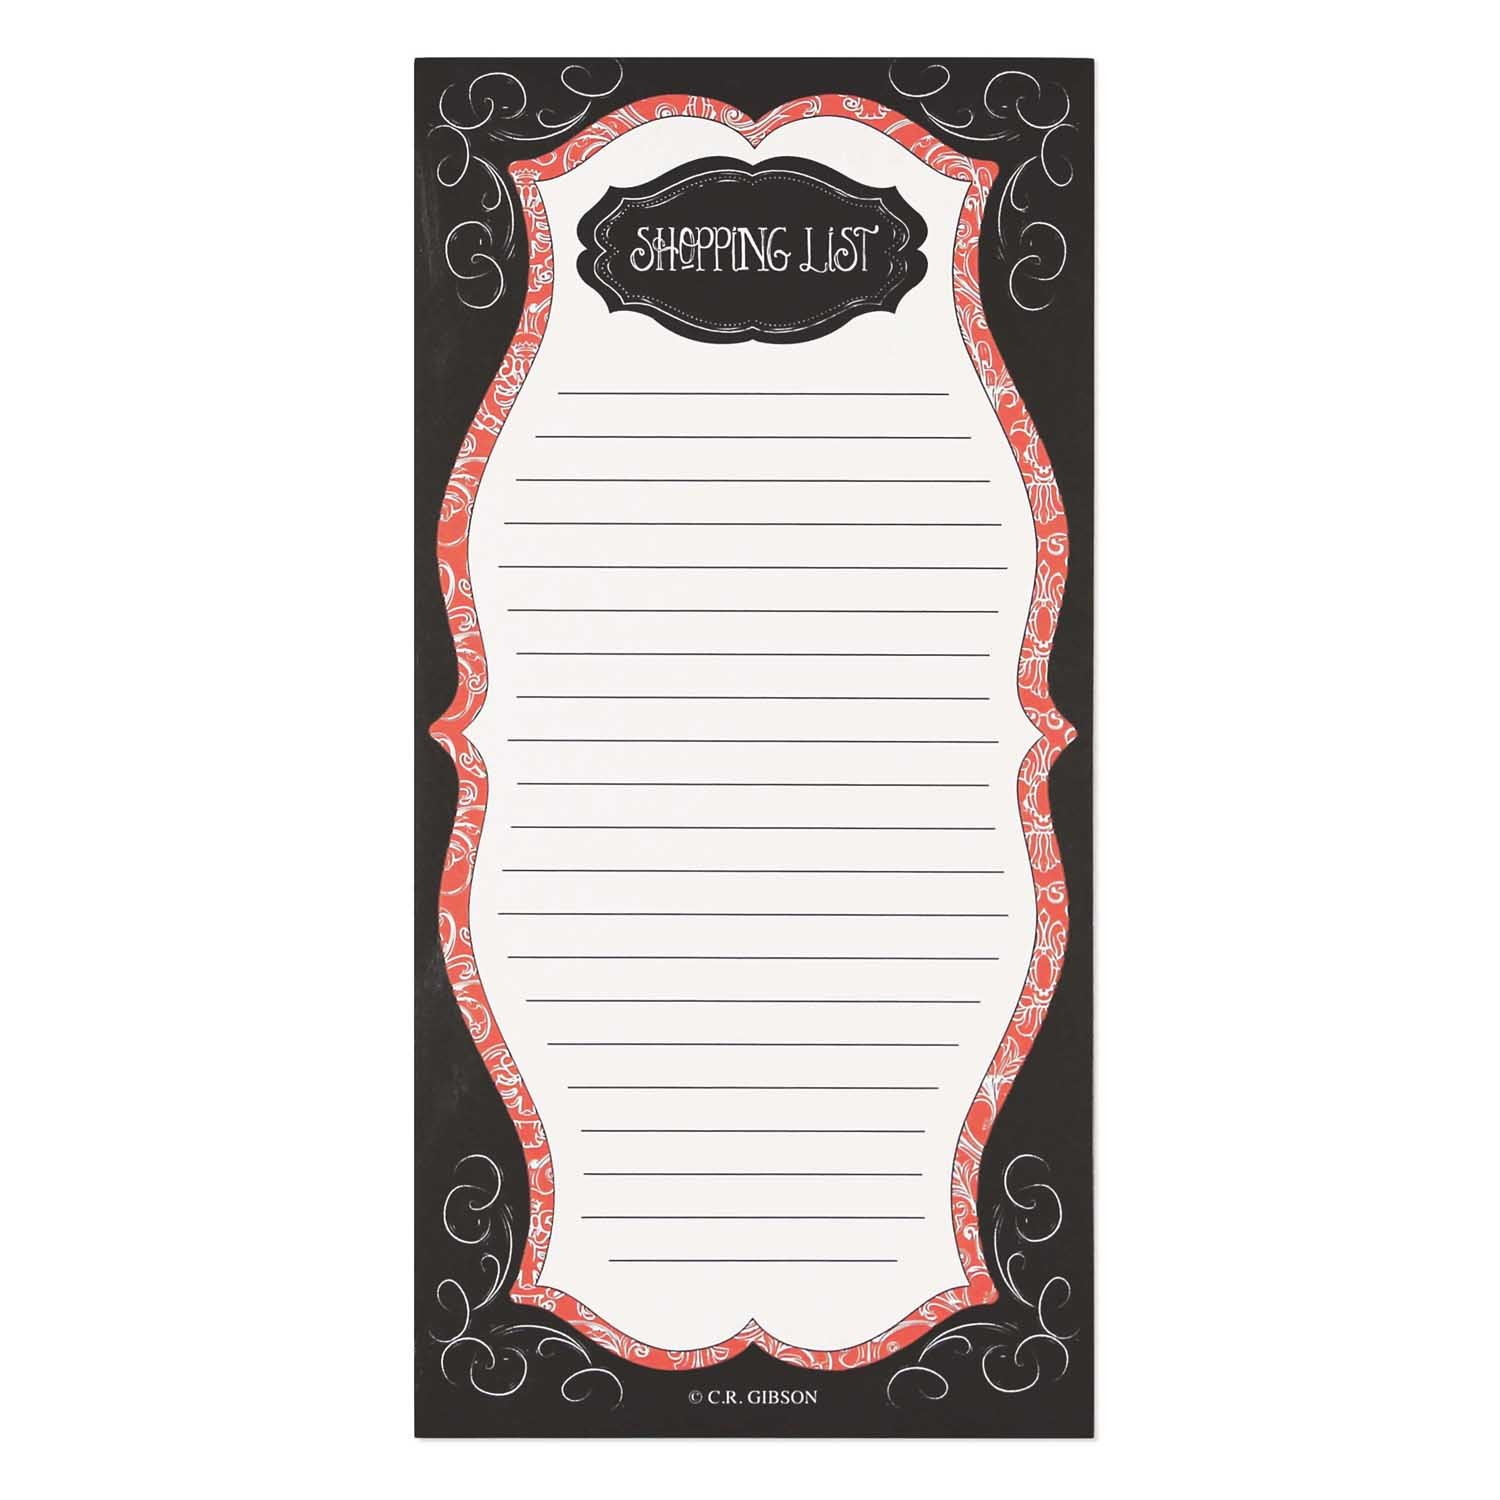 CR Gibson Magnetic Shopping List Pad Savory Eats